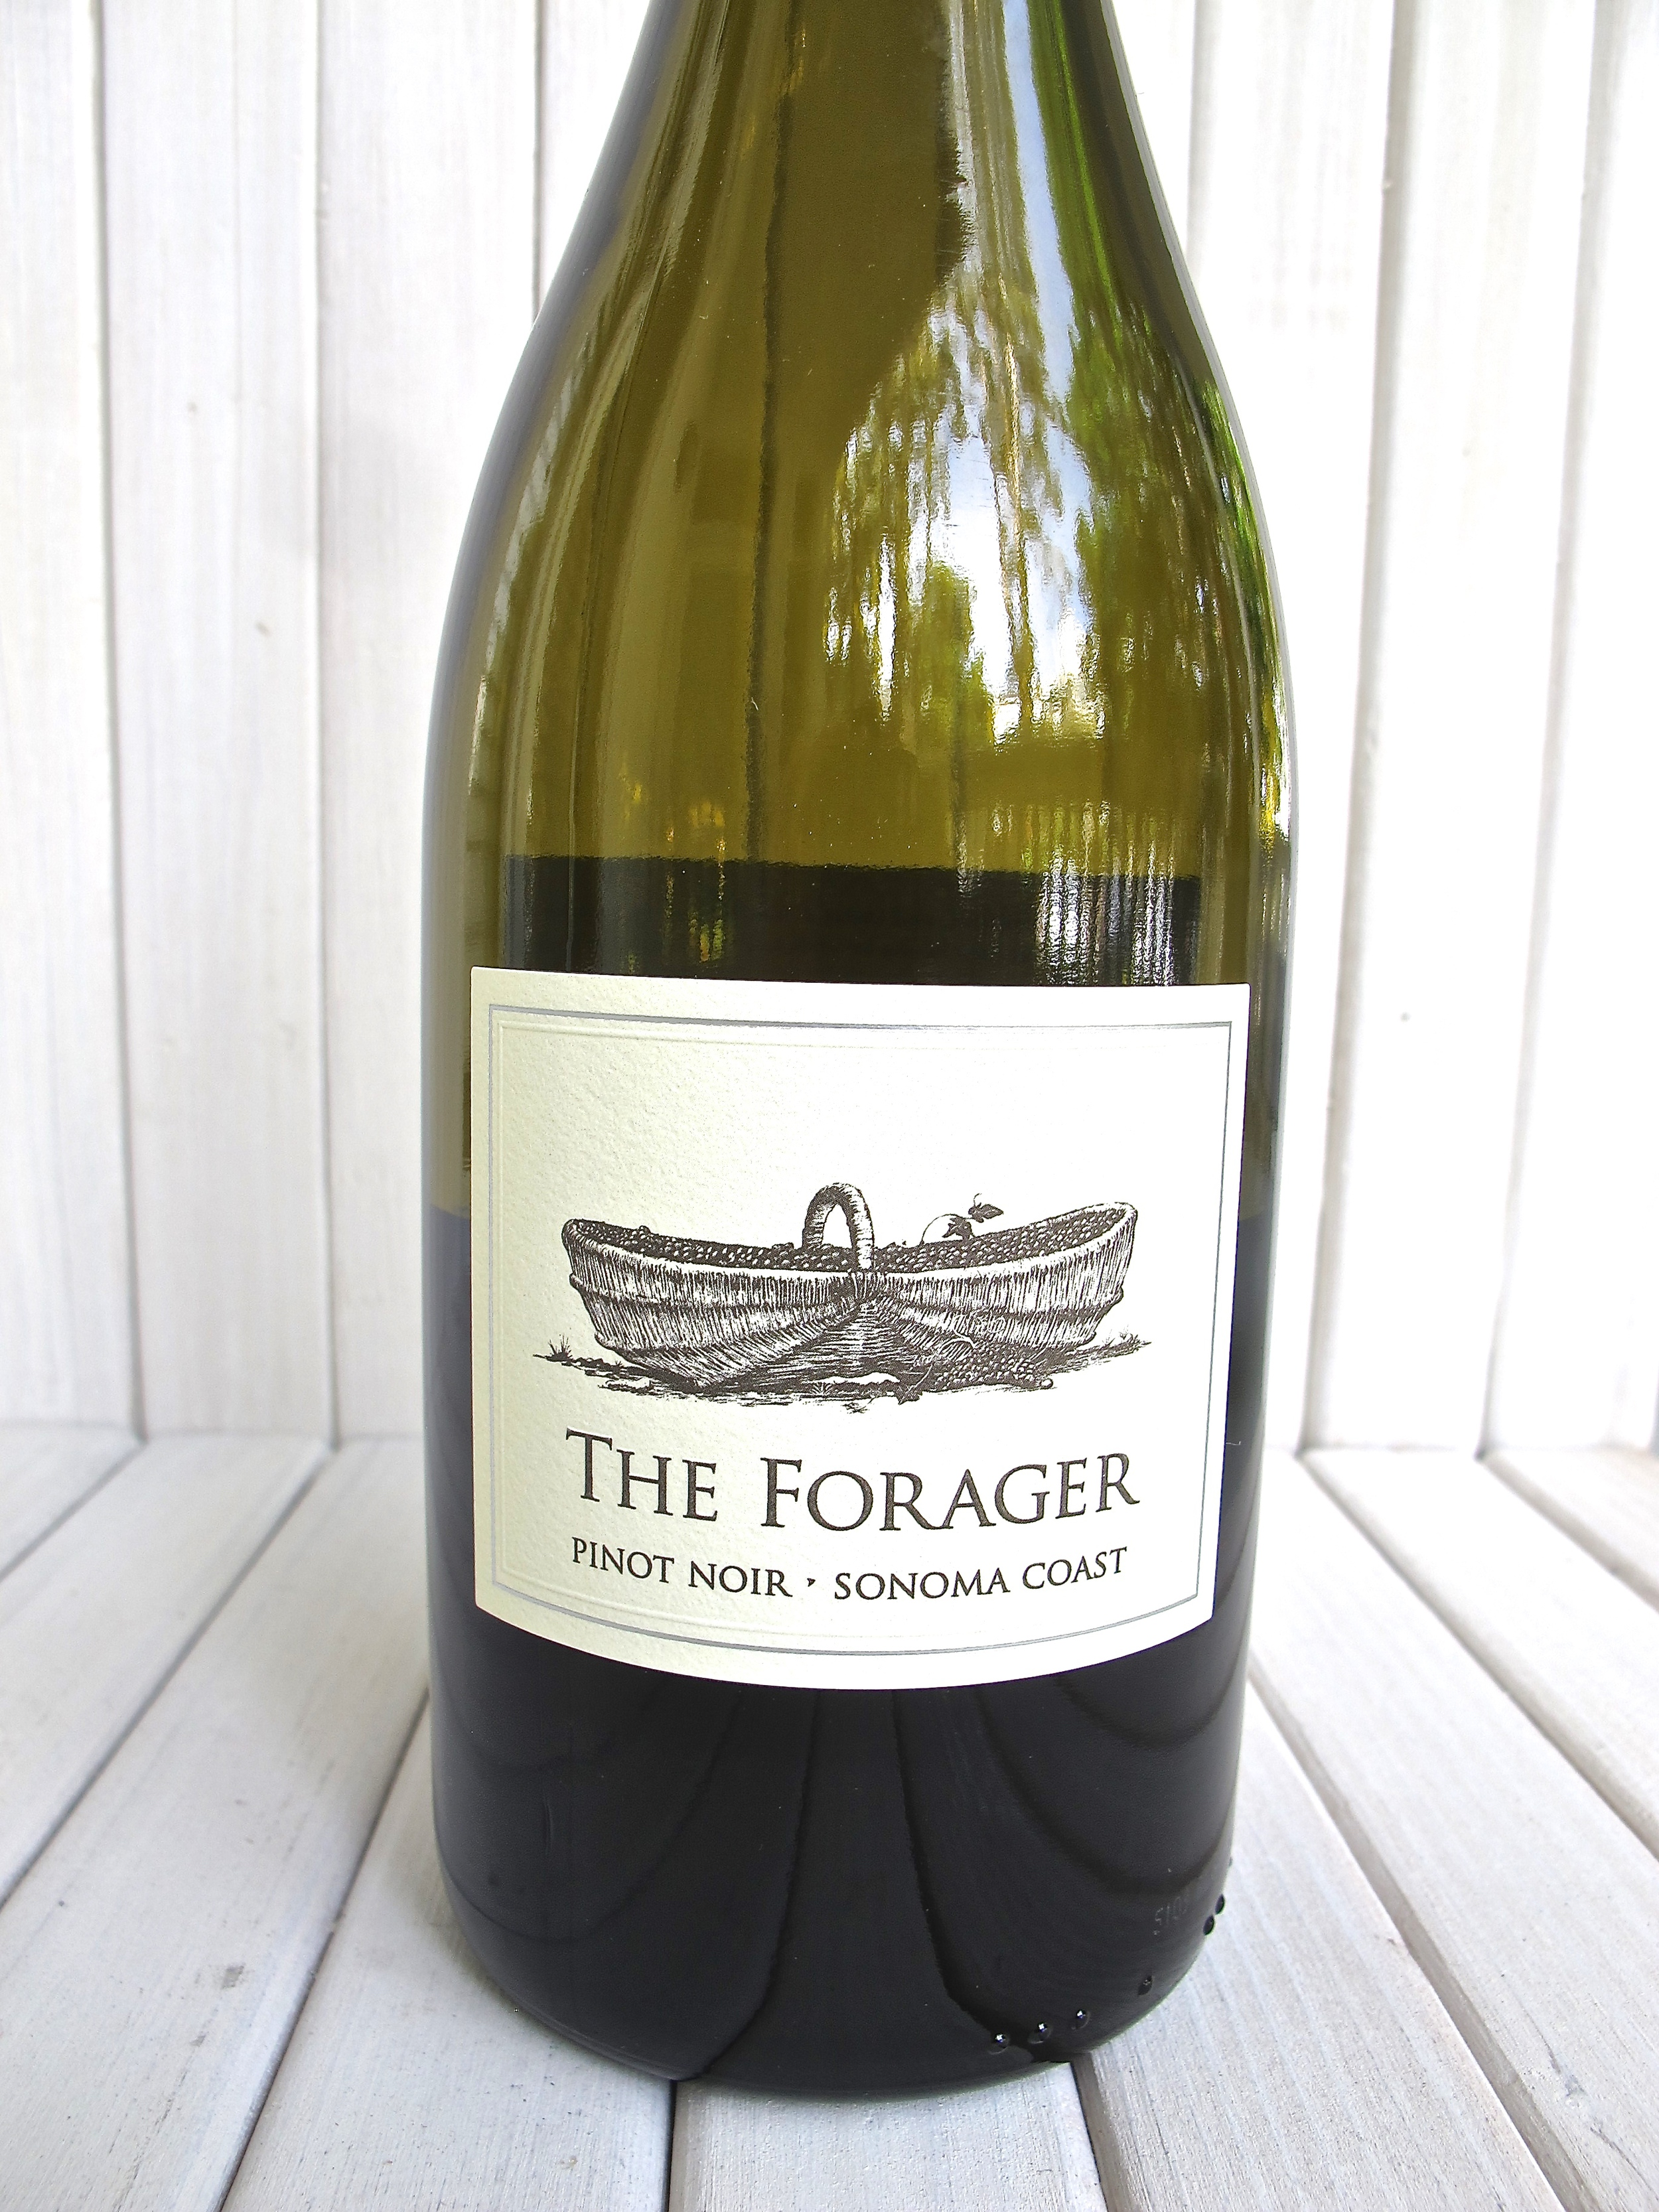 The Forager Pinot Noir